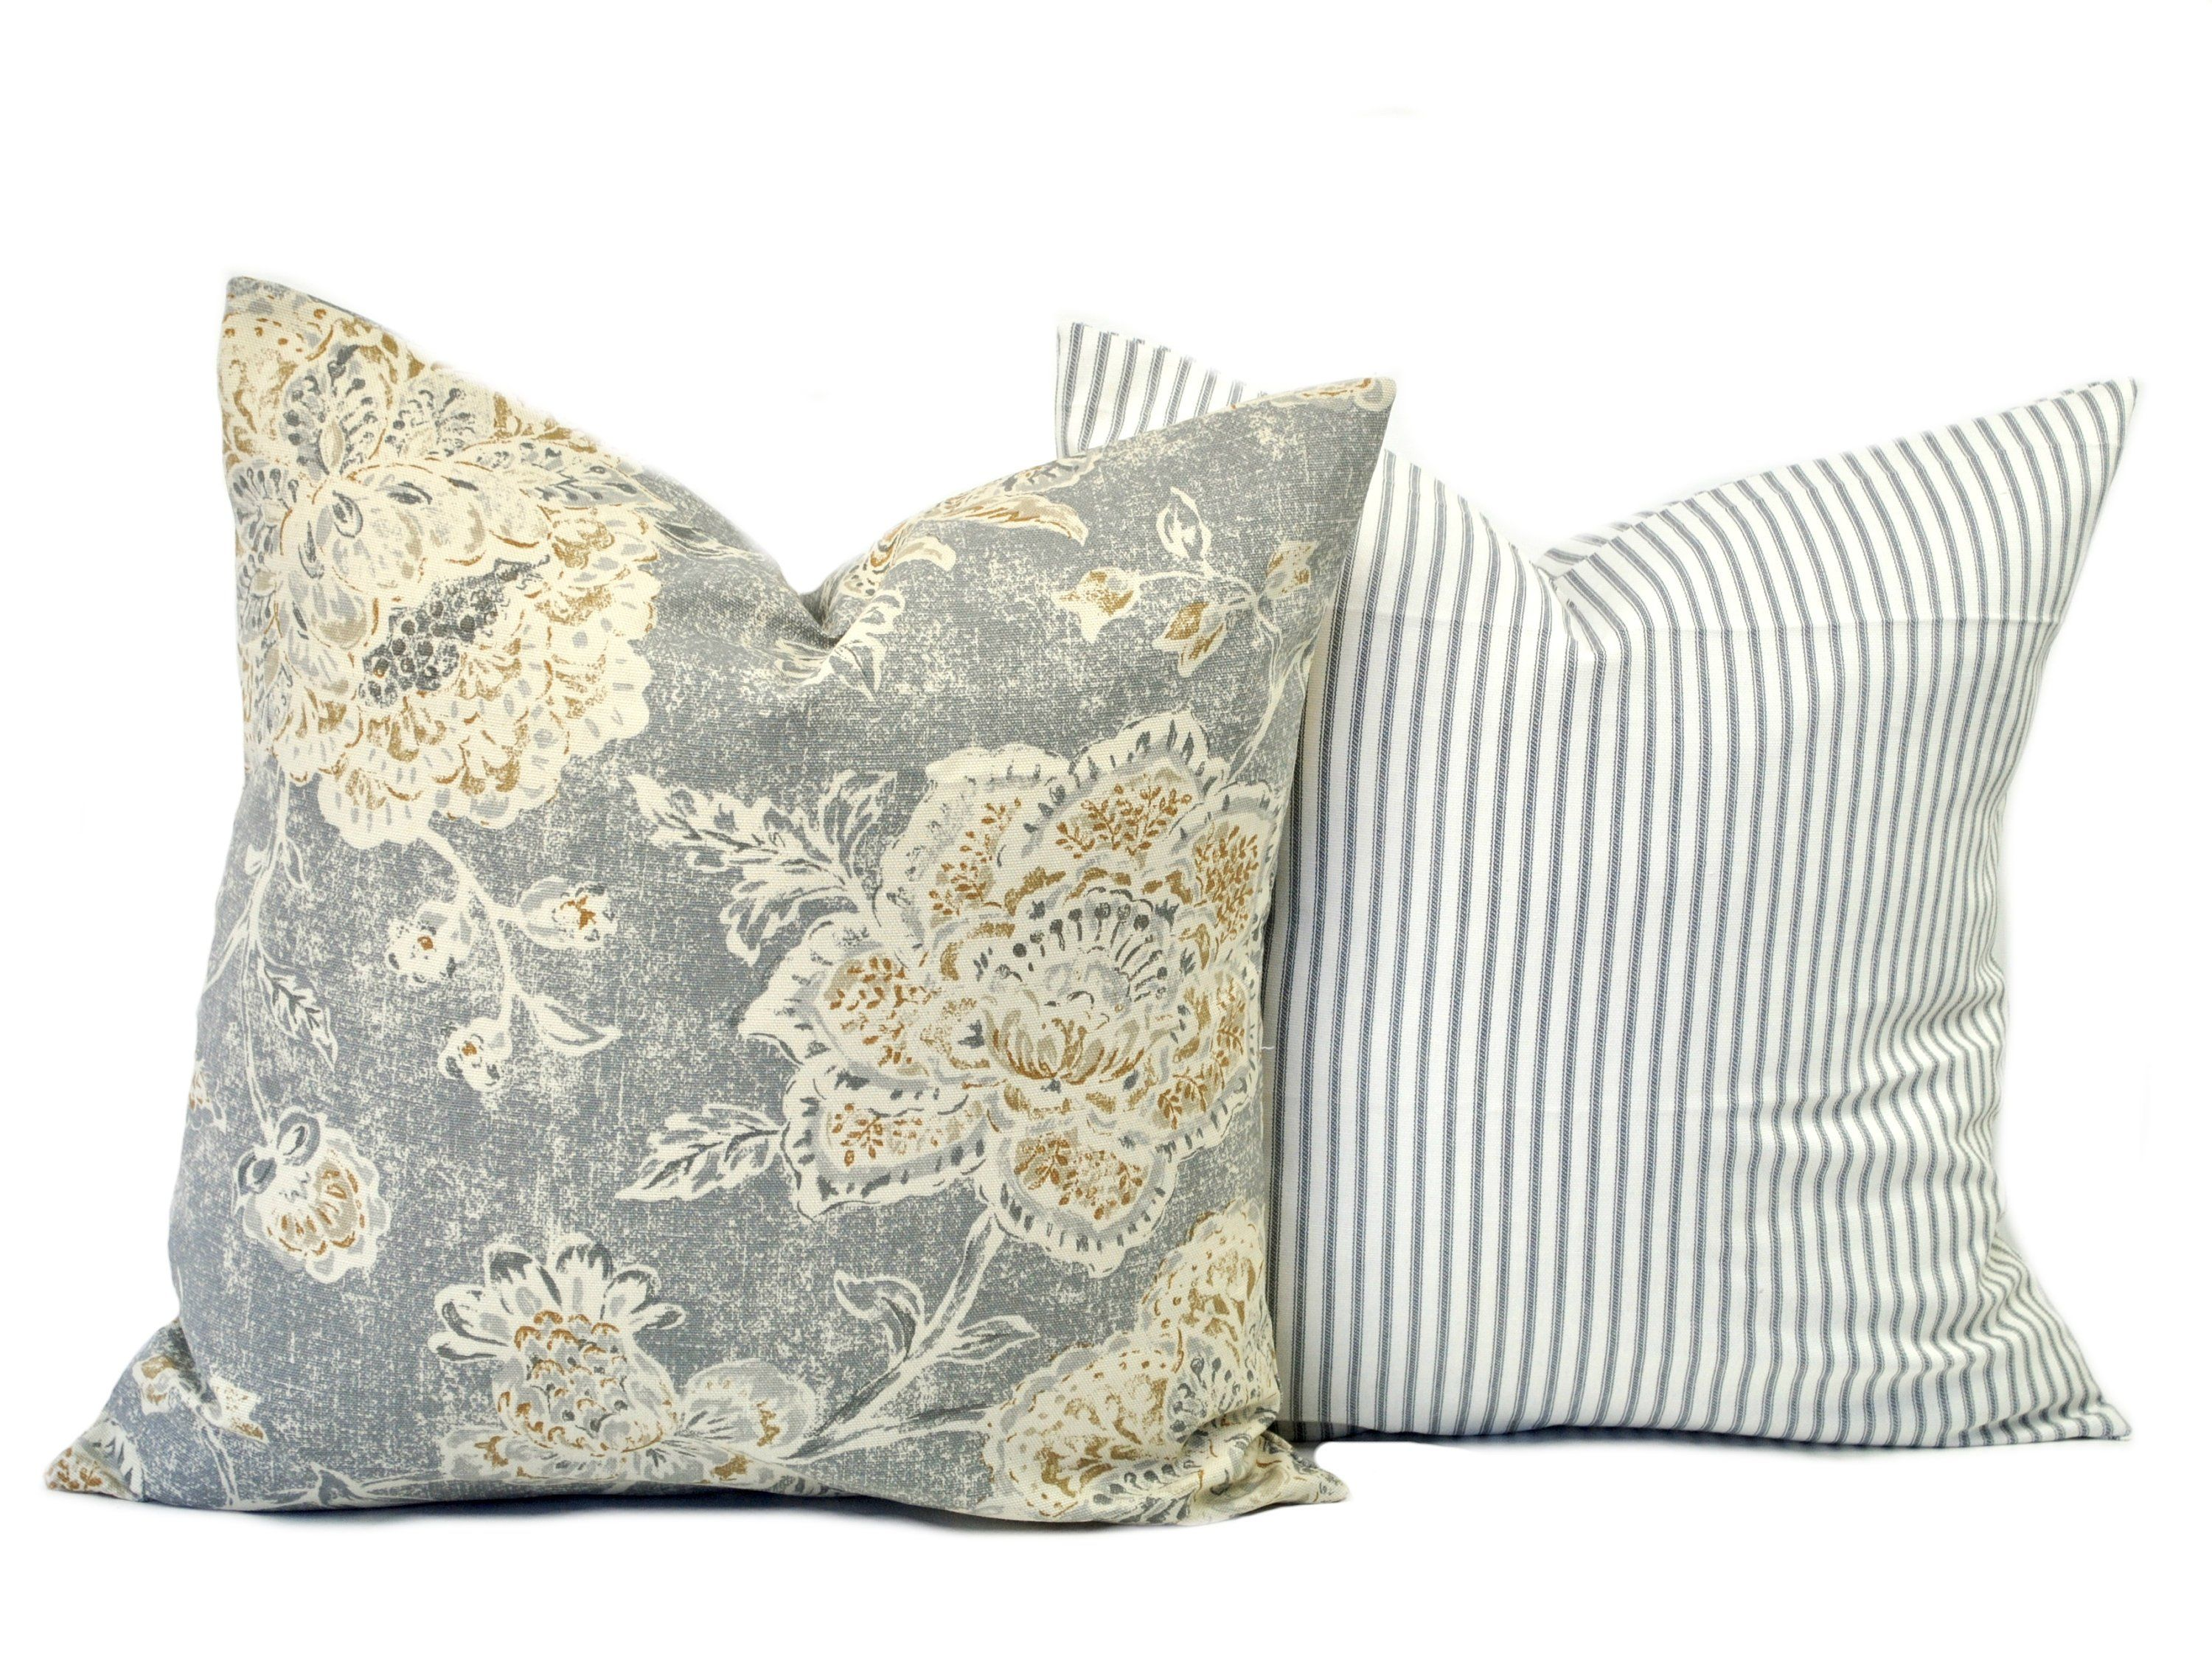 Two High Quality Magnolia Pillow Covers Slate Grey Pillow Etsy Magnolia Pillow Grey Pillows Tan Pillows